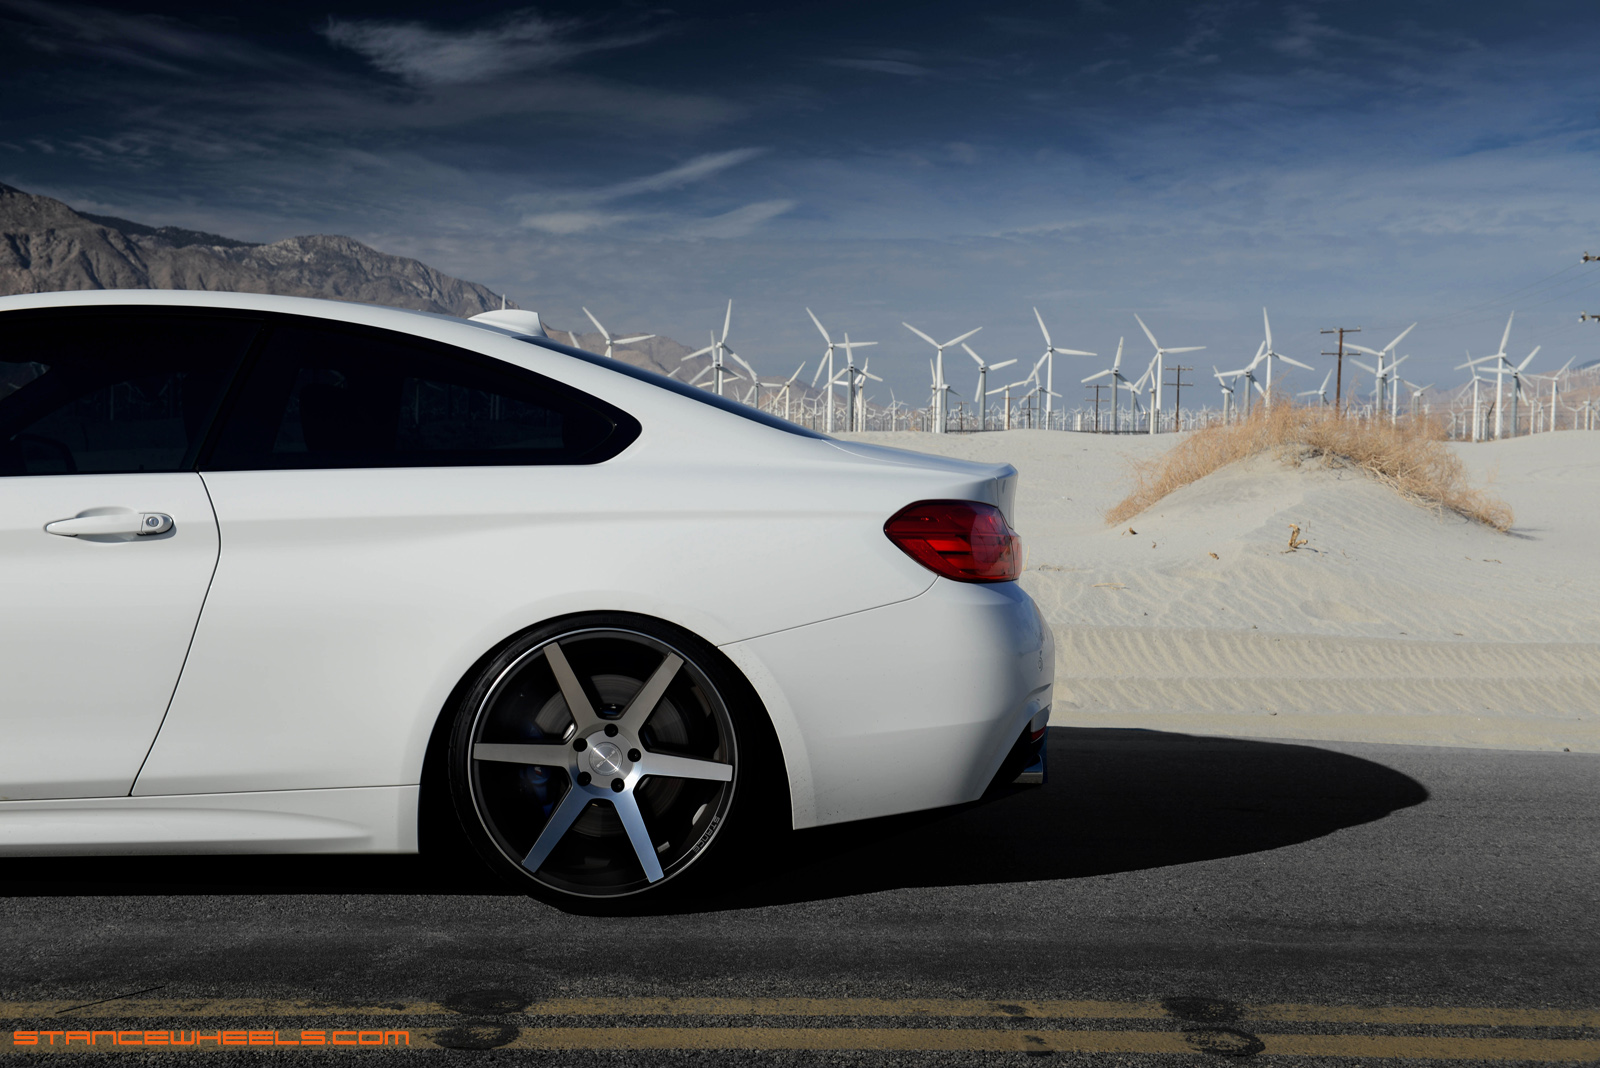 Bmw 435i F32 On Stance Sc 8 Photos Media Stance Wheels -  f32 f33 f36 official alpine white 4 series photo thread page 3